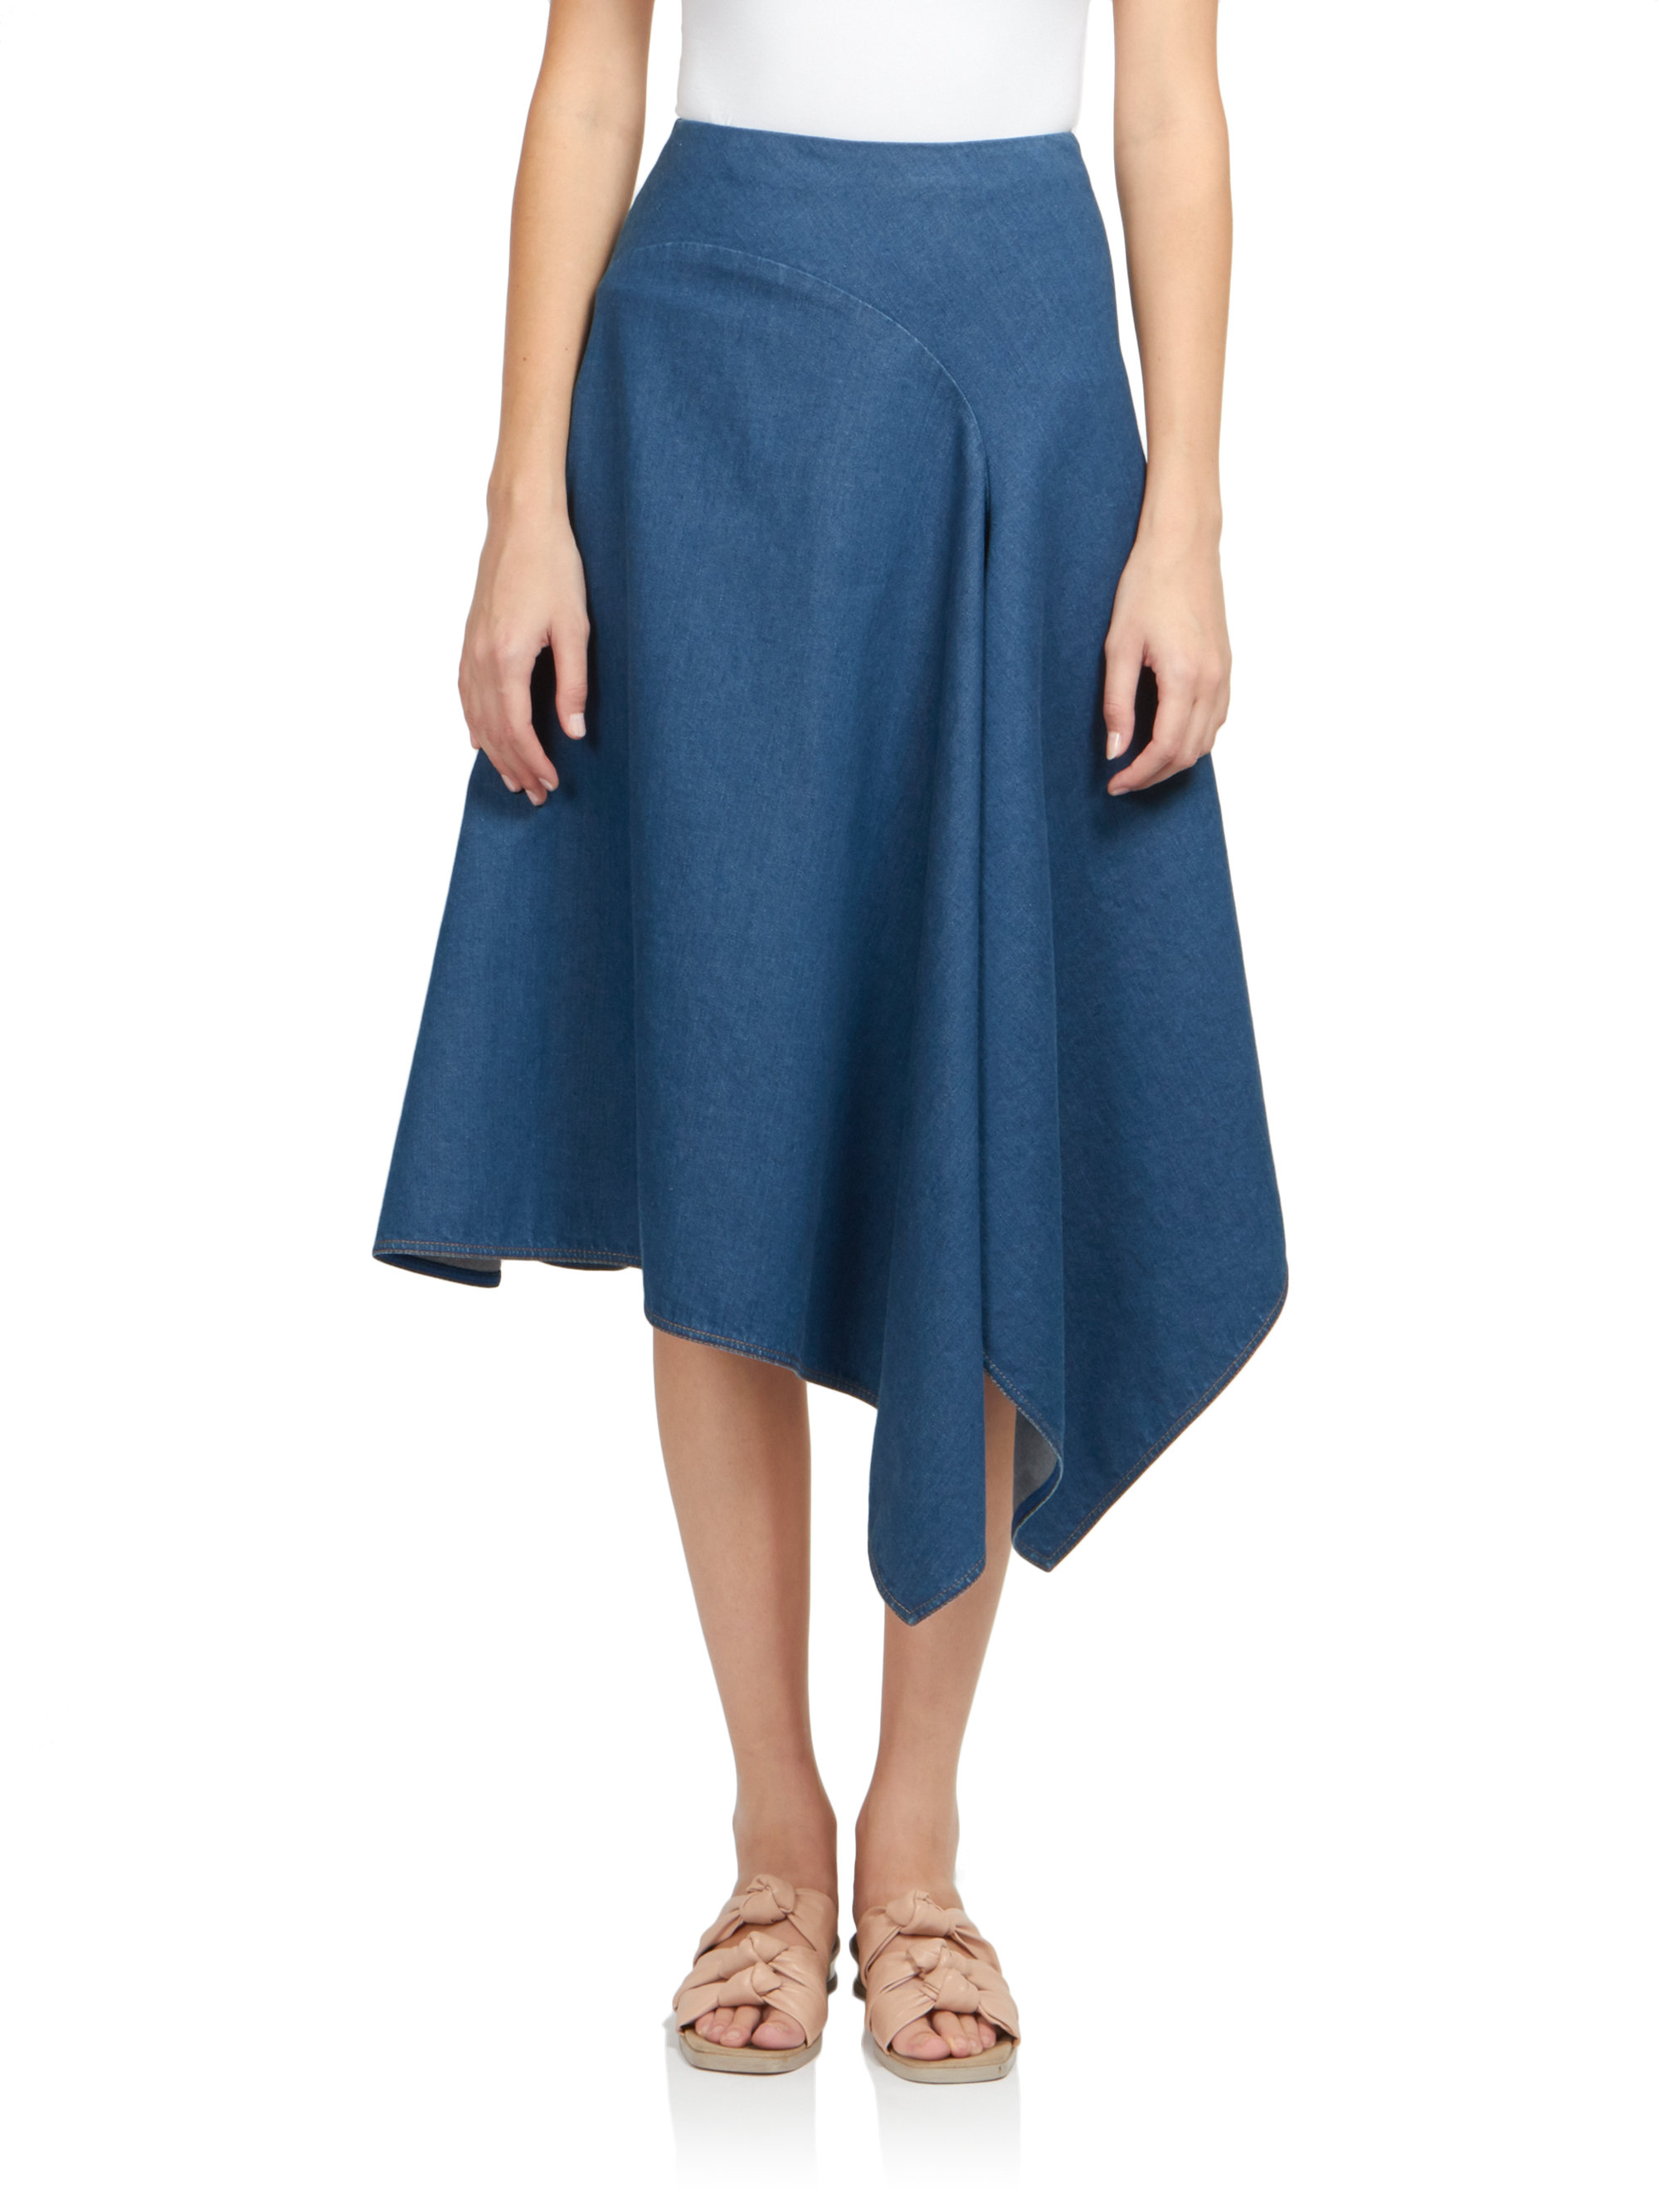 stella mccartney asymmetrical denim skirt in blue lyst